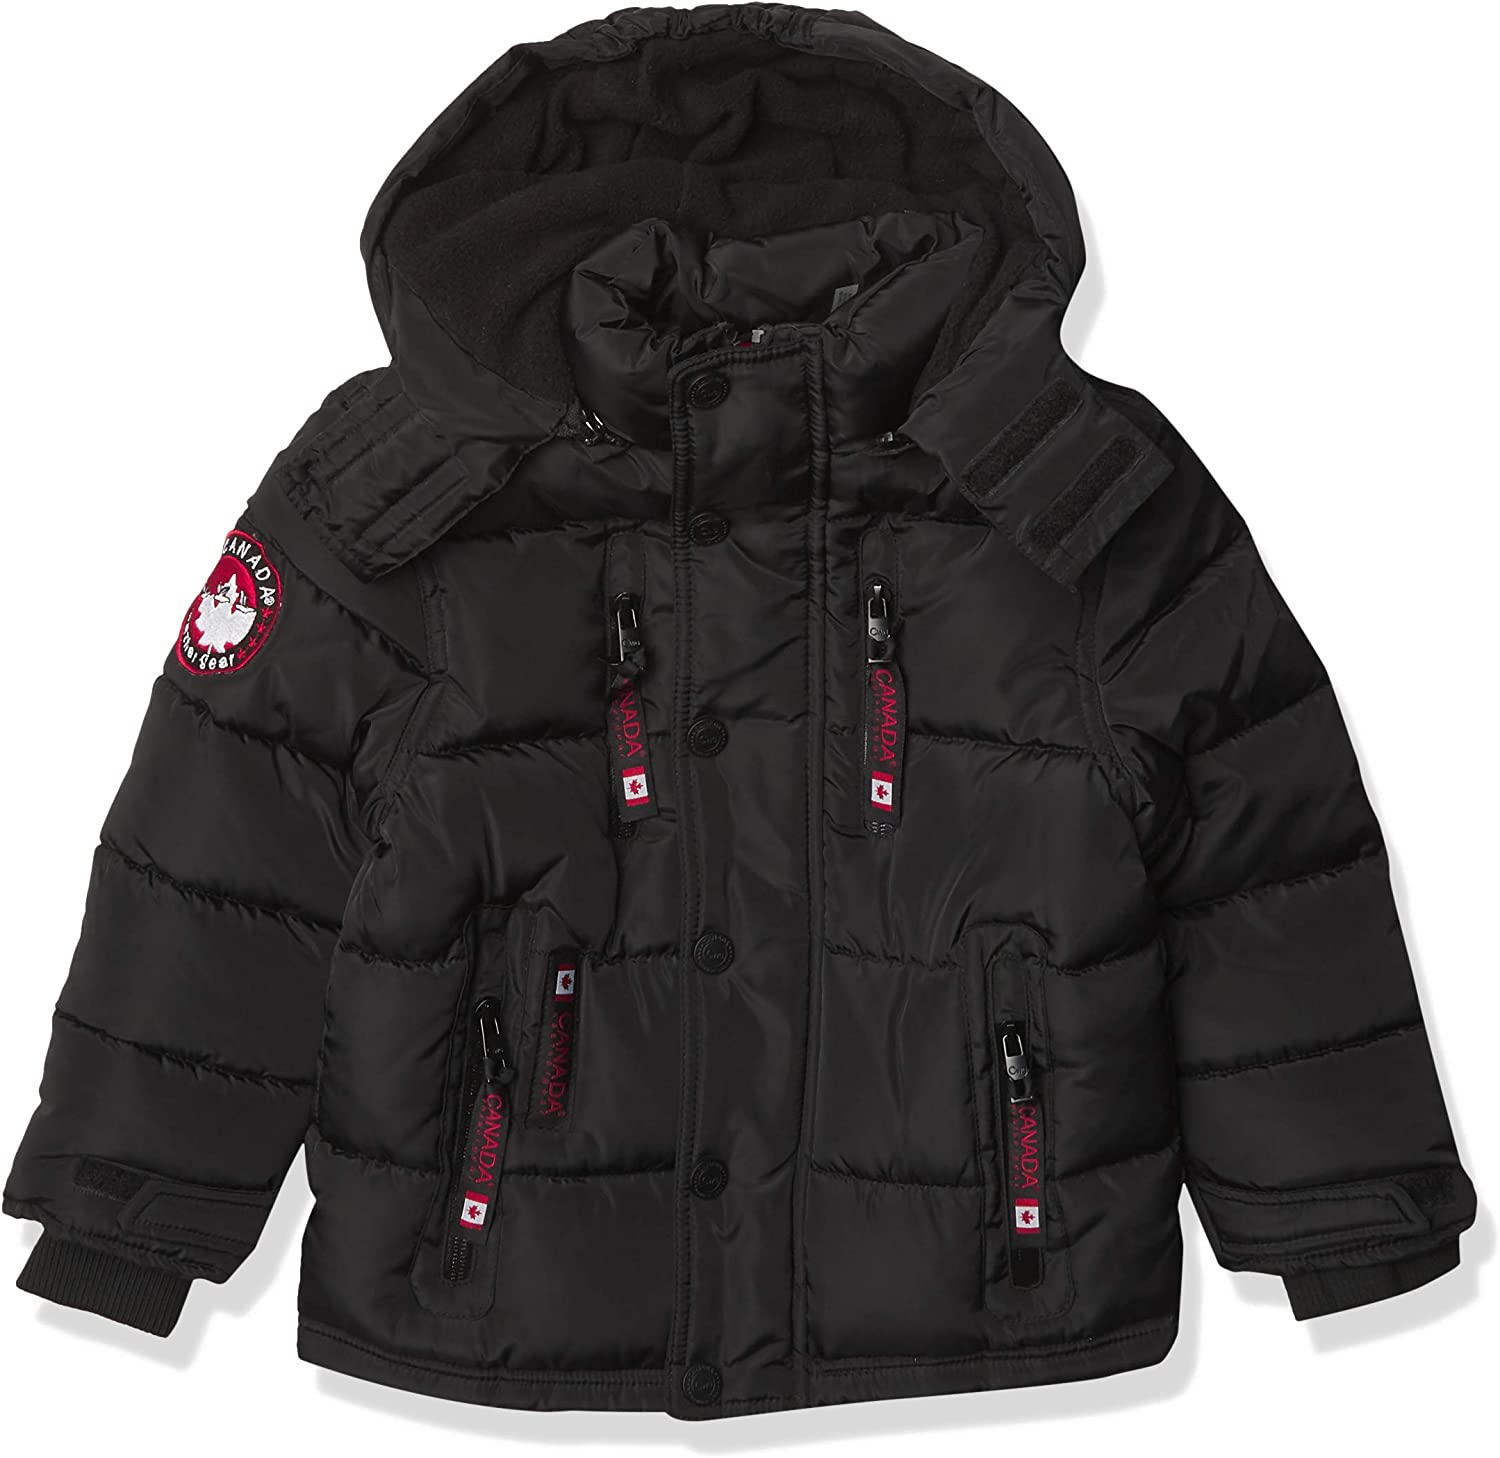 Selling CANADA WEATHER GEAR Boys' Puffer Discount is also underway